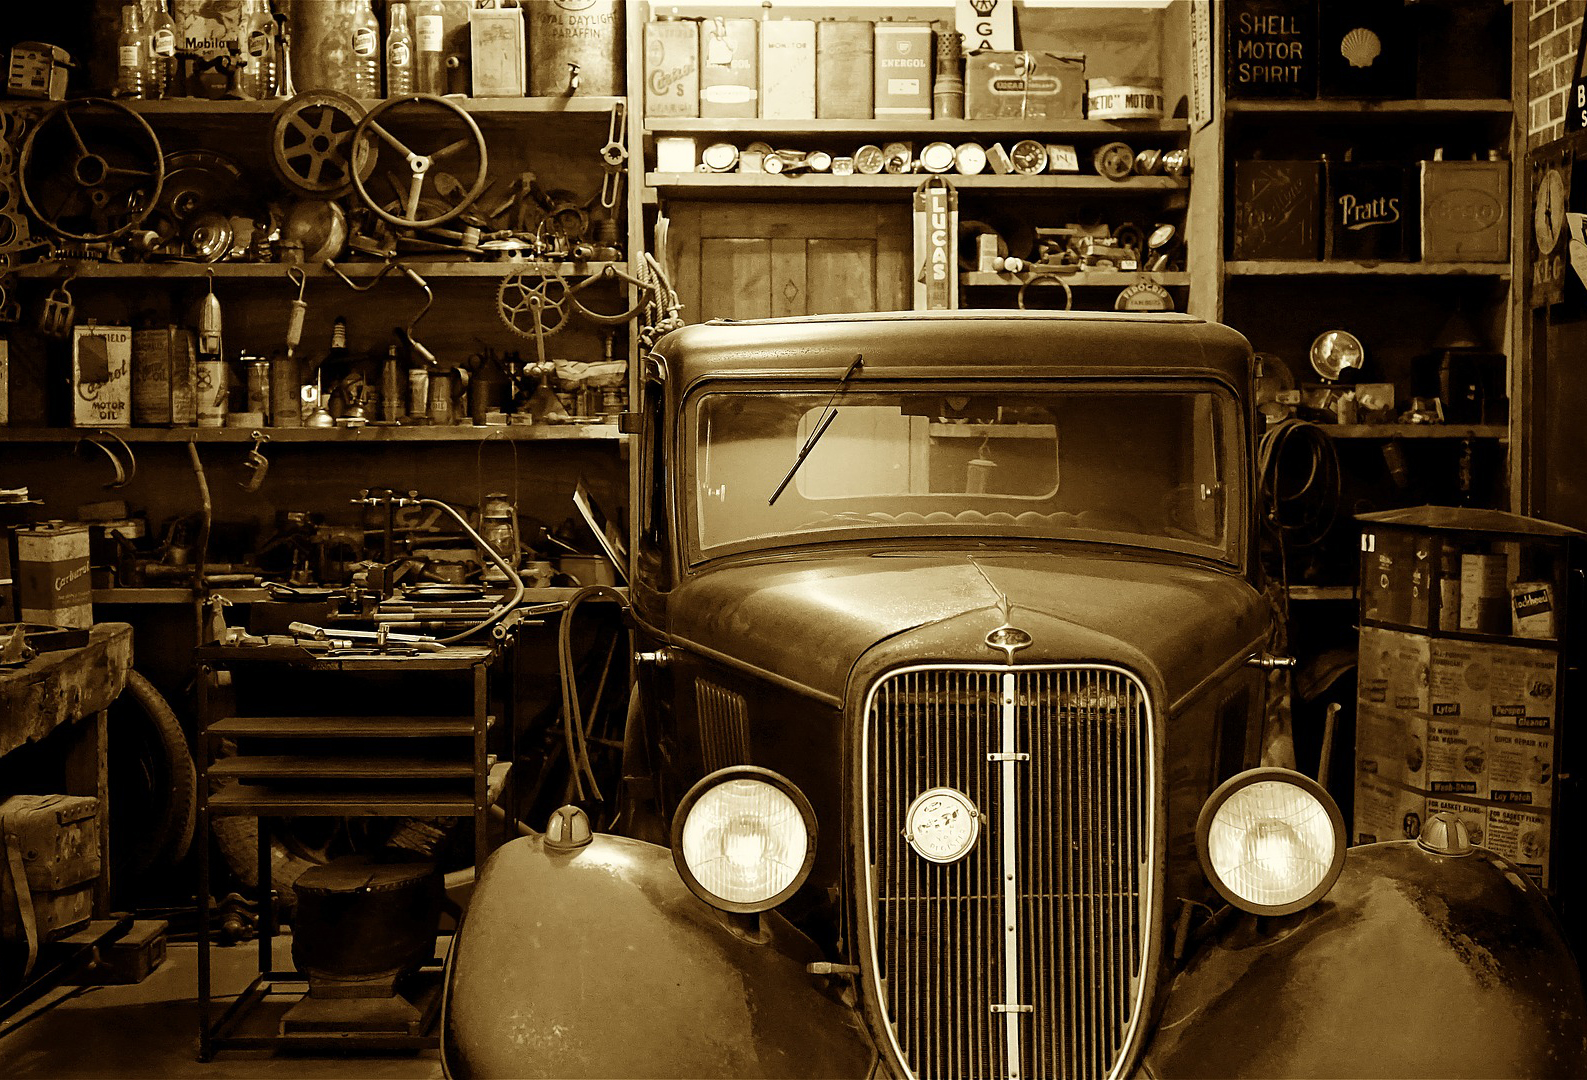 Mechanic Insurance In The Motor Trades Sector